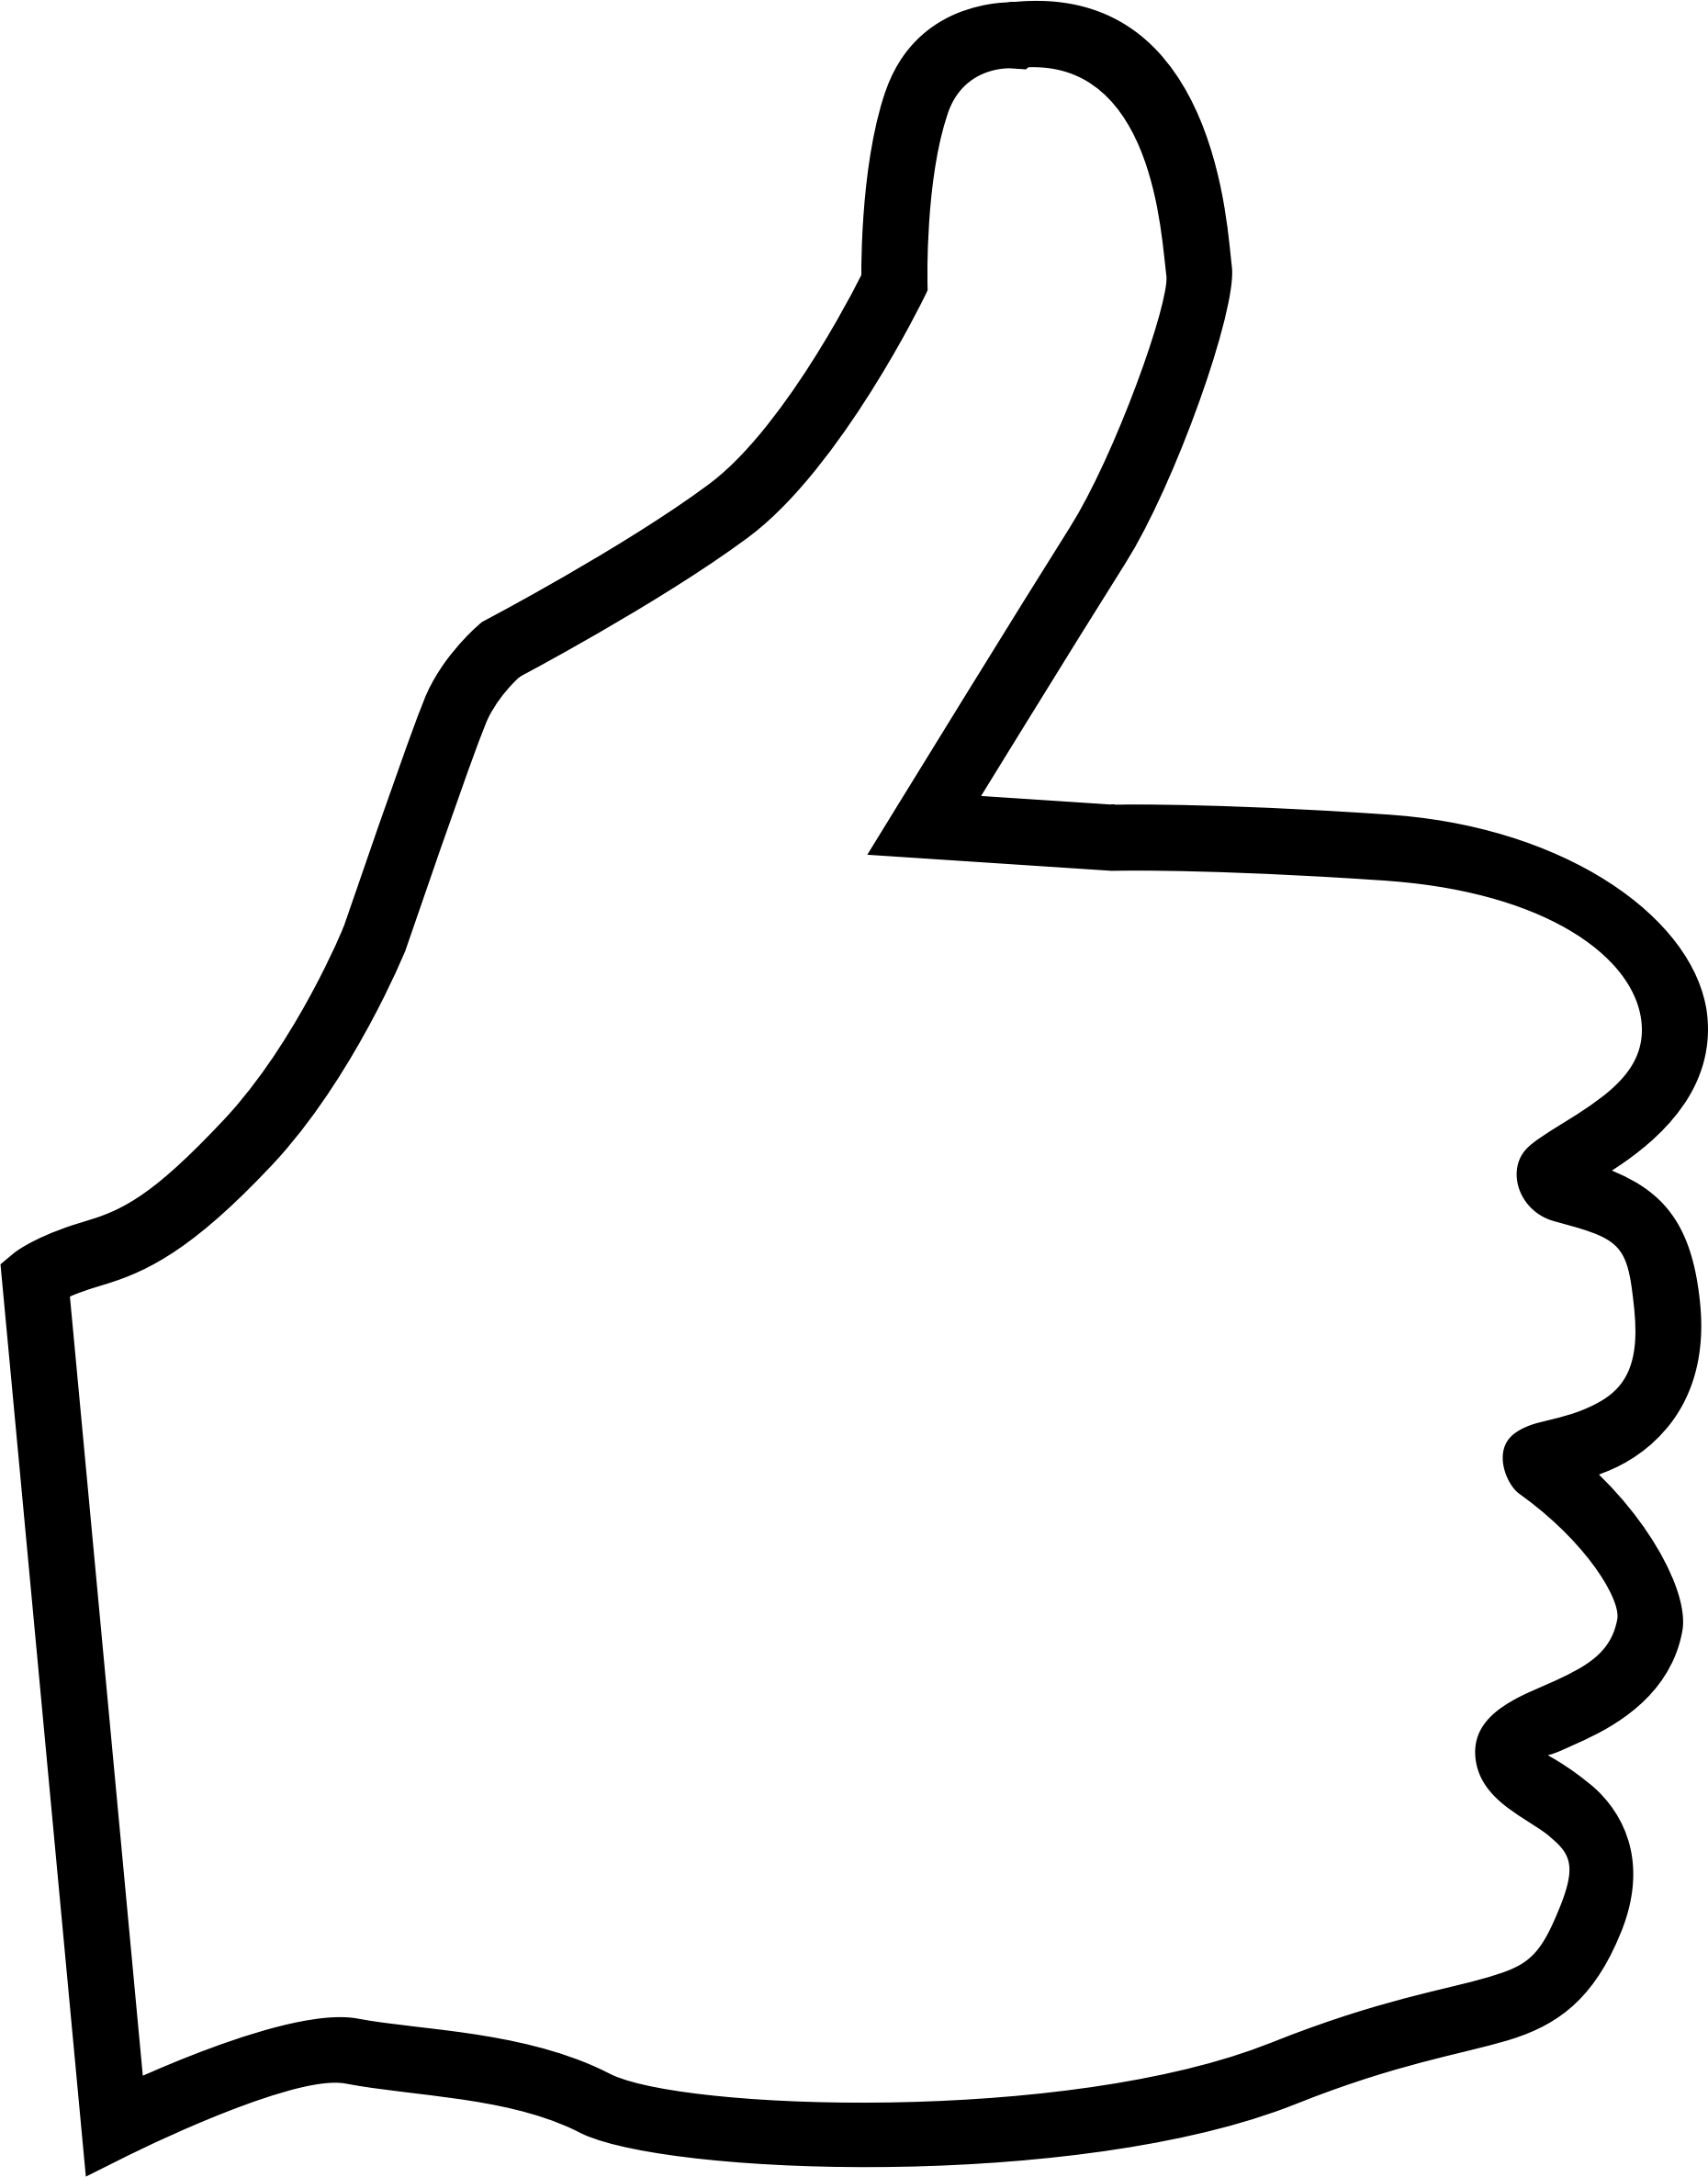 Thumbs Up Free Clip Art On Clipart Library Transparent Png.